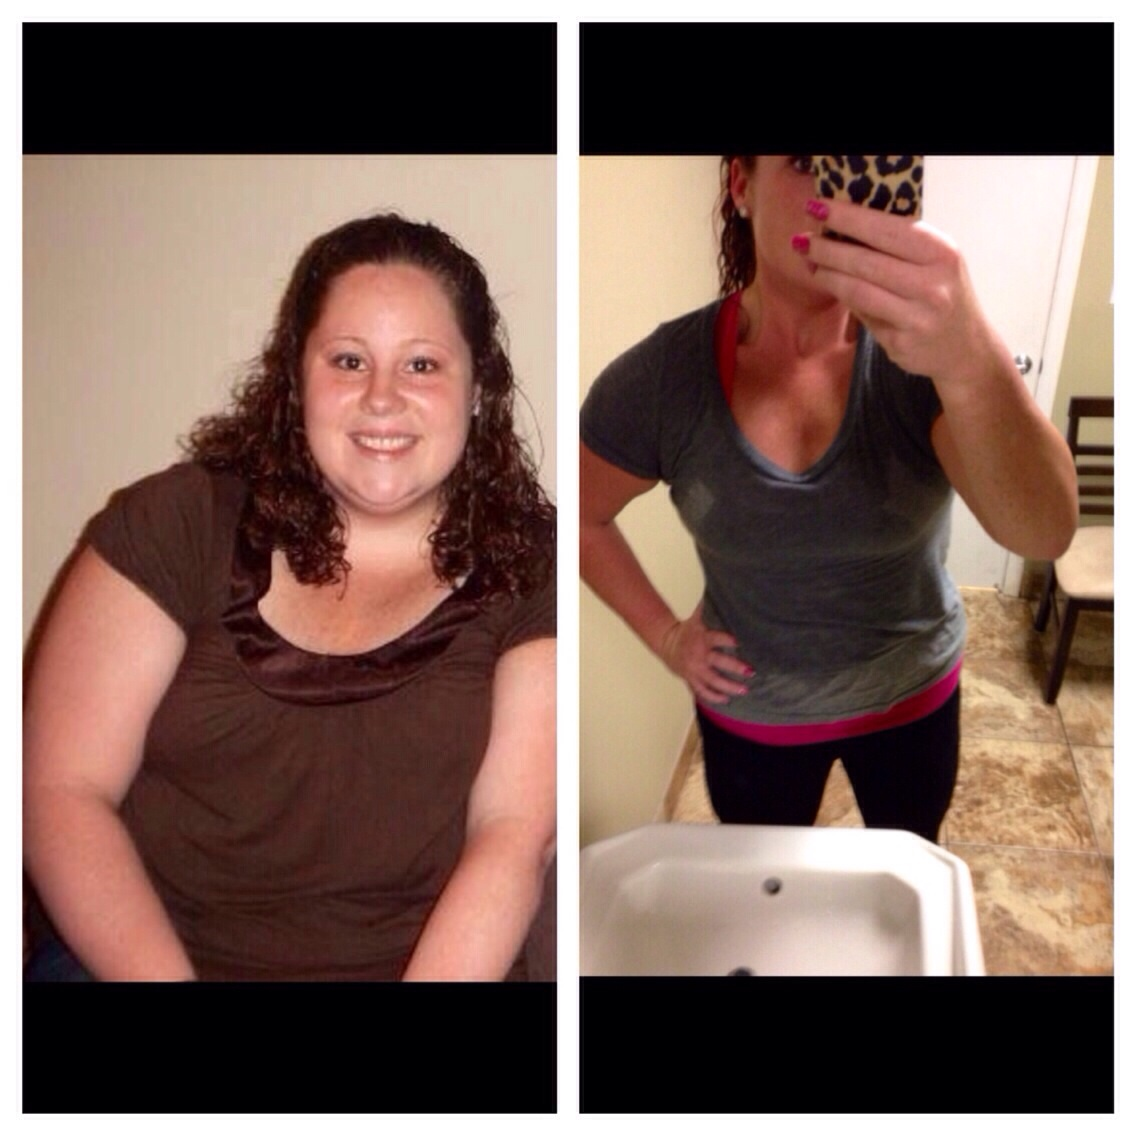 Great success story! Read before and after fitness transformation stories from women and men who hit weight loss goals and got THAT BODY with training and meal prep. Find inspiration, motivation, and workout tips   134 Pounds Lost: My new life! 134 Pounds Down (so far!)